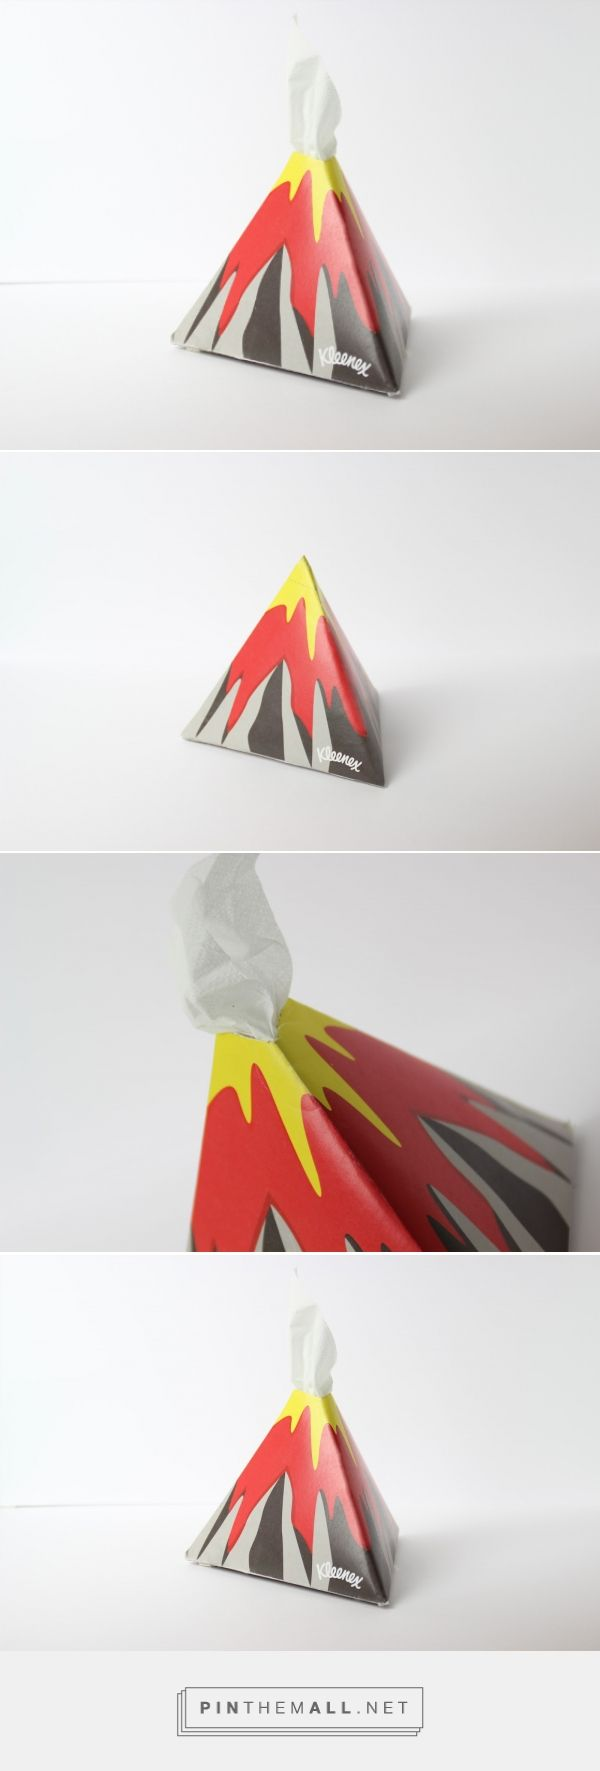 Tissues' Explosion packaging design by Myrto Lazaridou - http://www.packagingoftheworld.com/2018/01/tissues-explosion.html